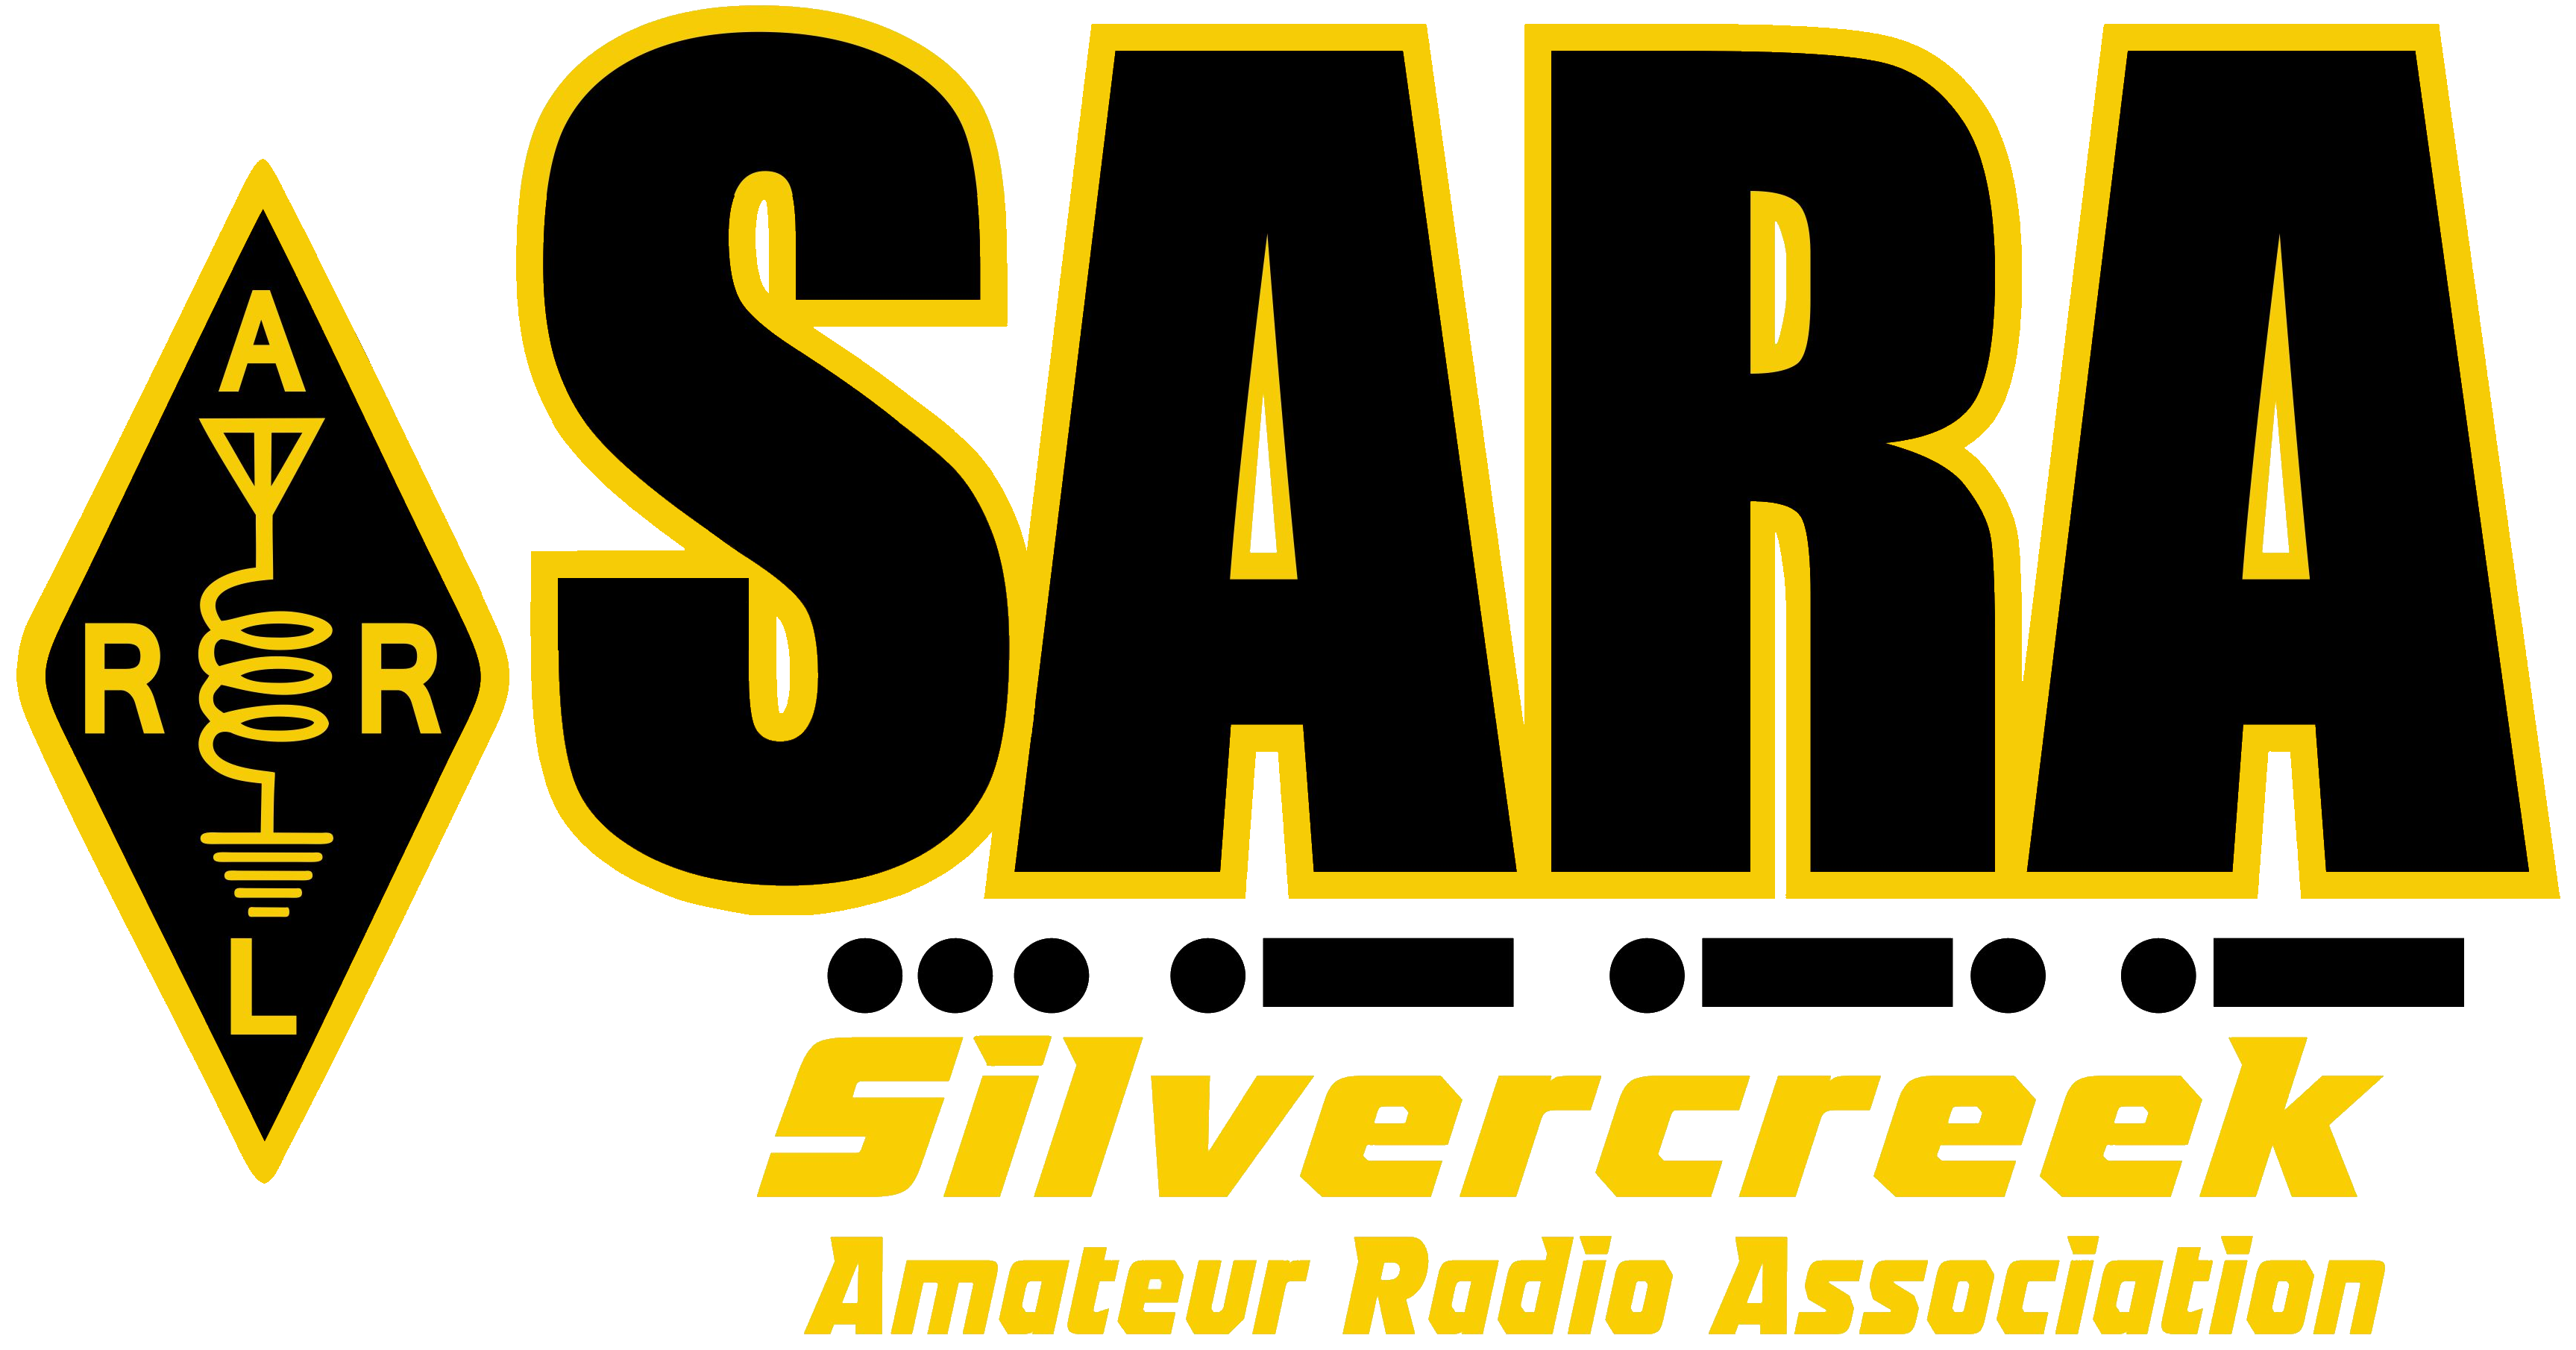 SARA Branding and Images.